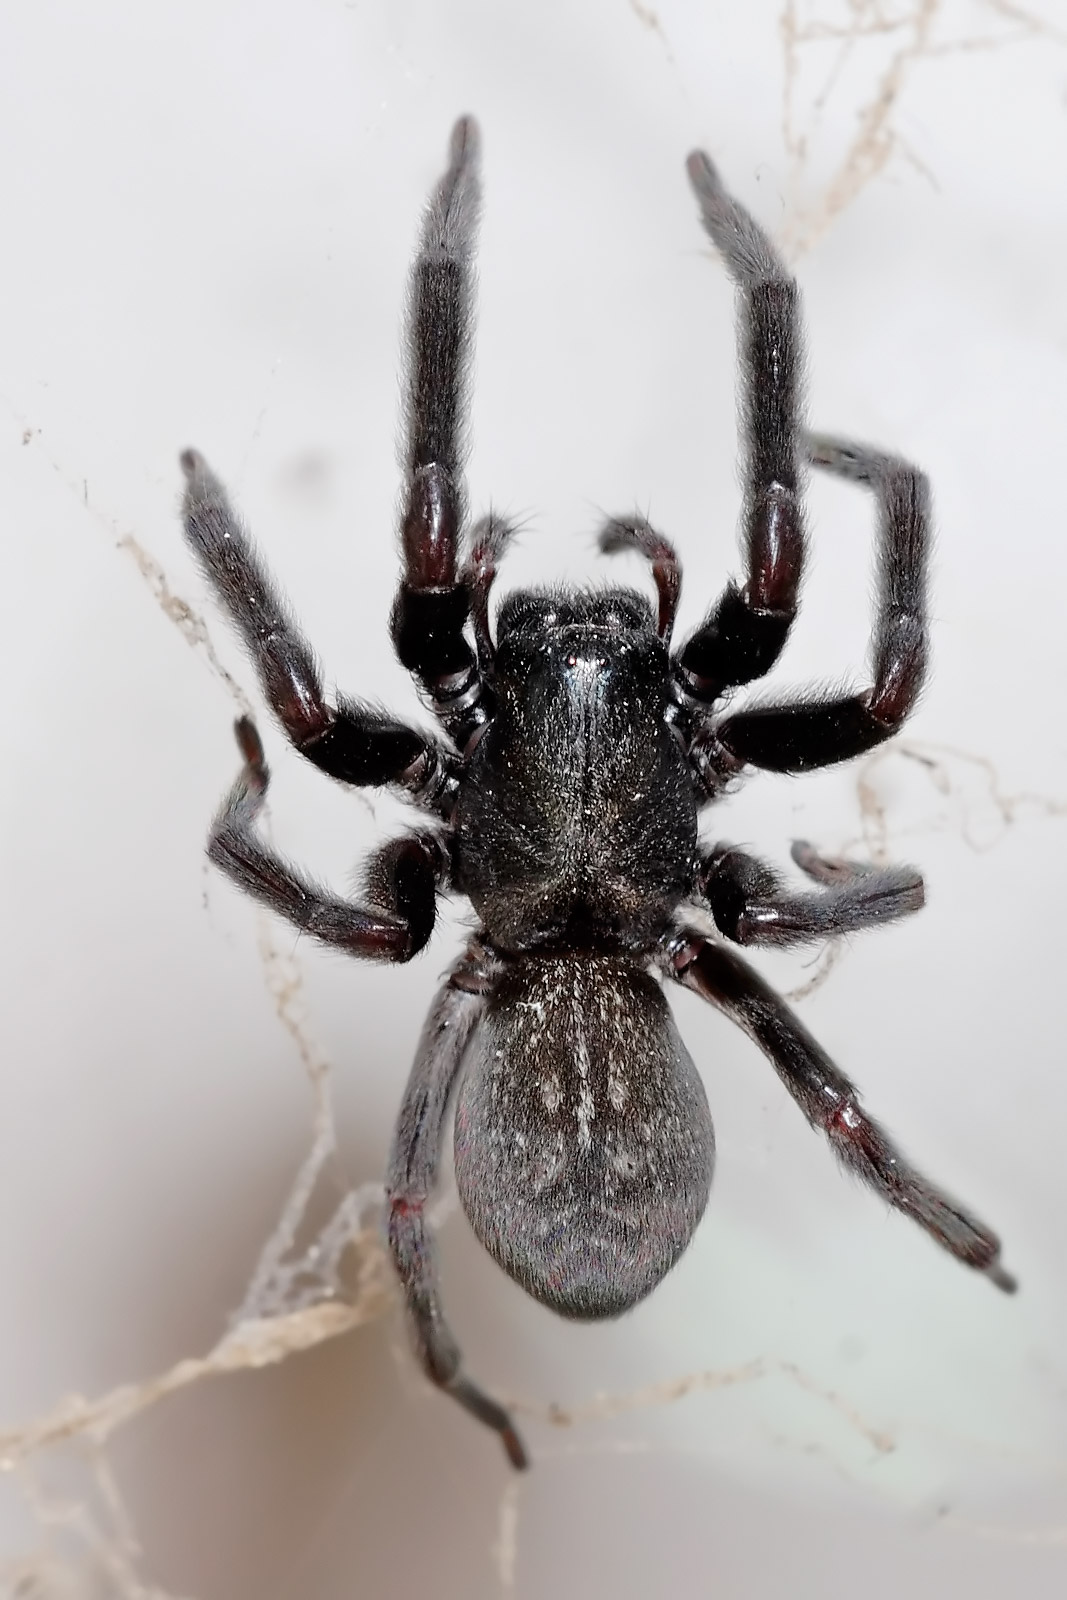 What does a grey house spider look like wikianswers fandom powered by wikia for What does a garden spider look like